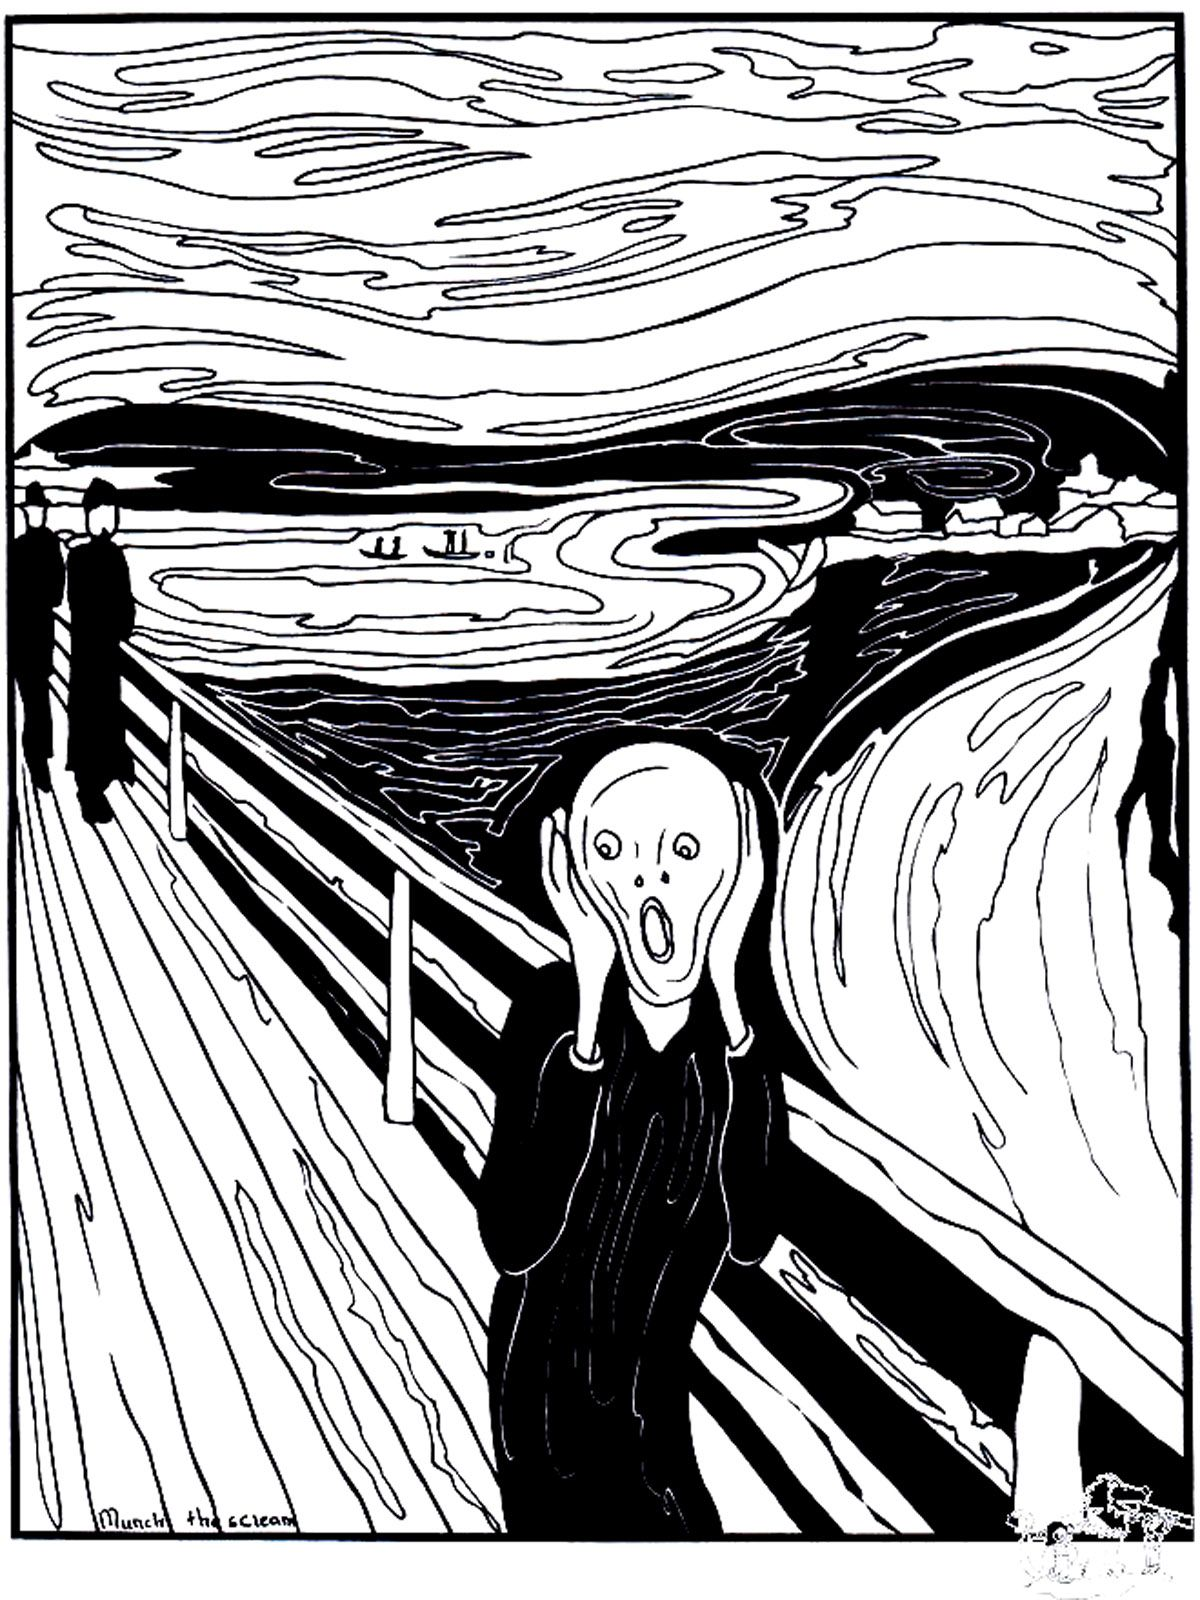 The Scream was painted by the expressionist